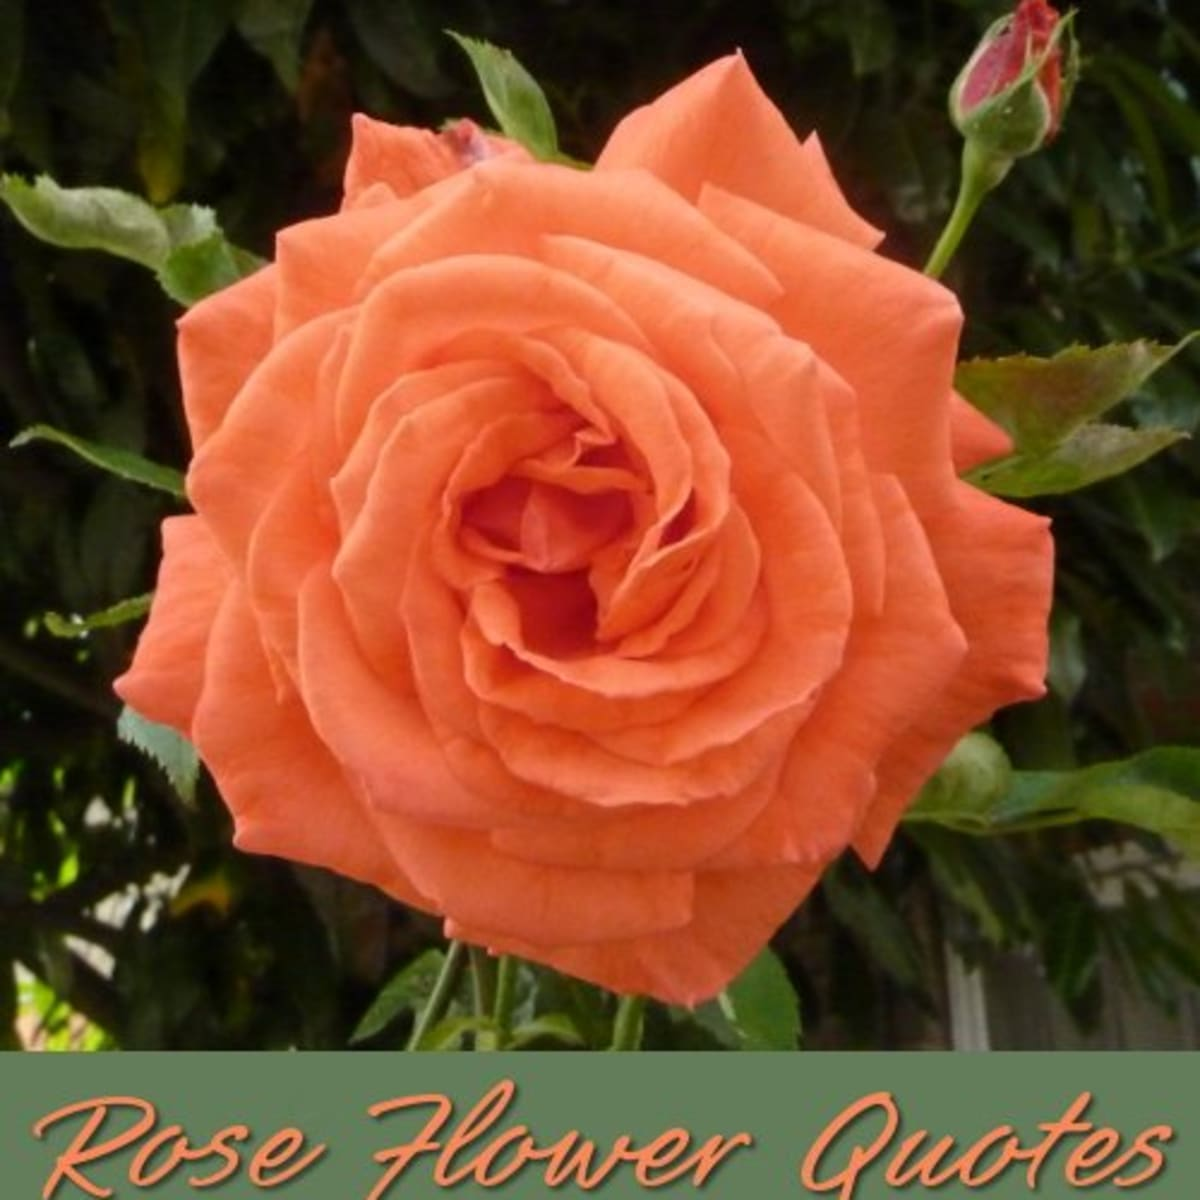 Beautiful Quotes About The Rose Flower Holidappy Celebrations